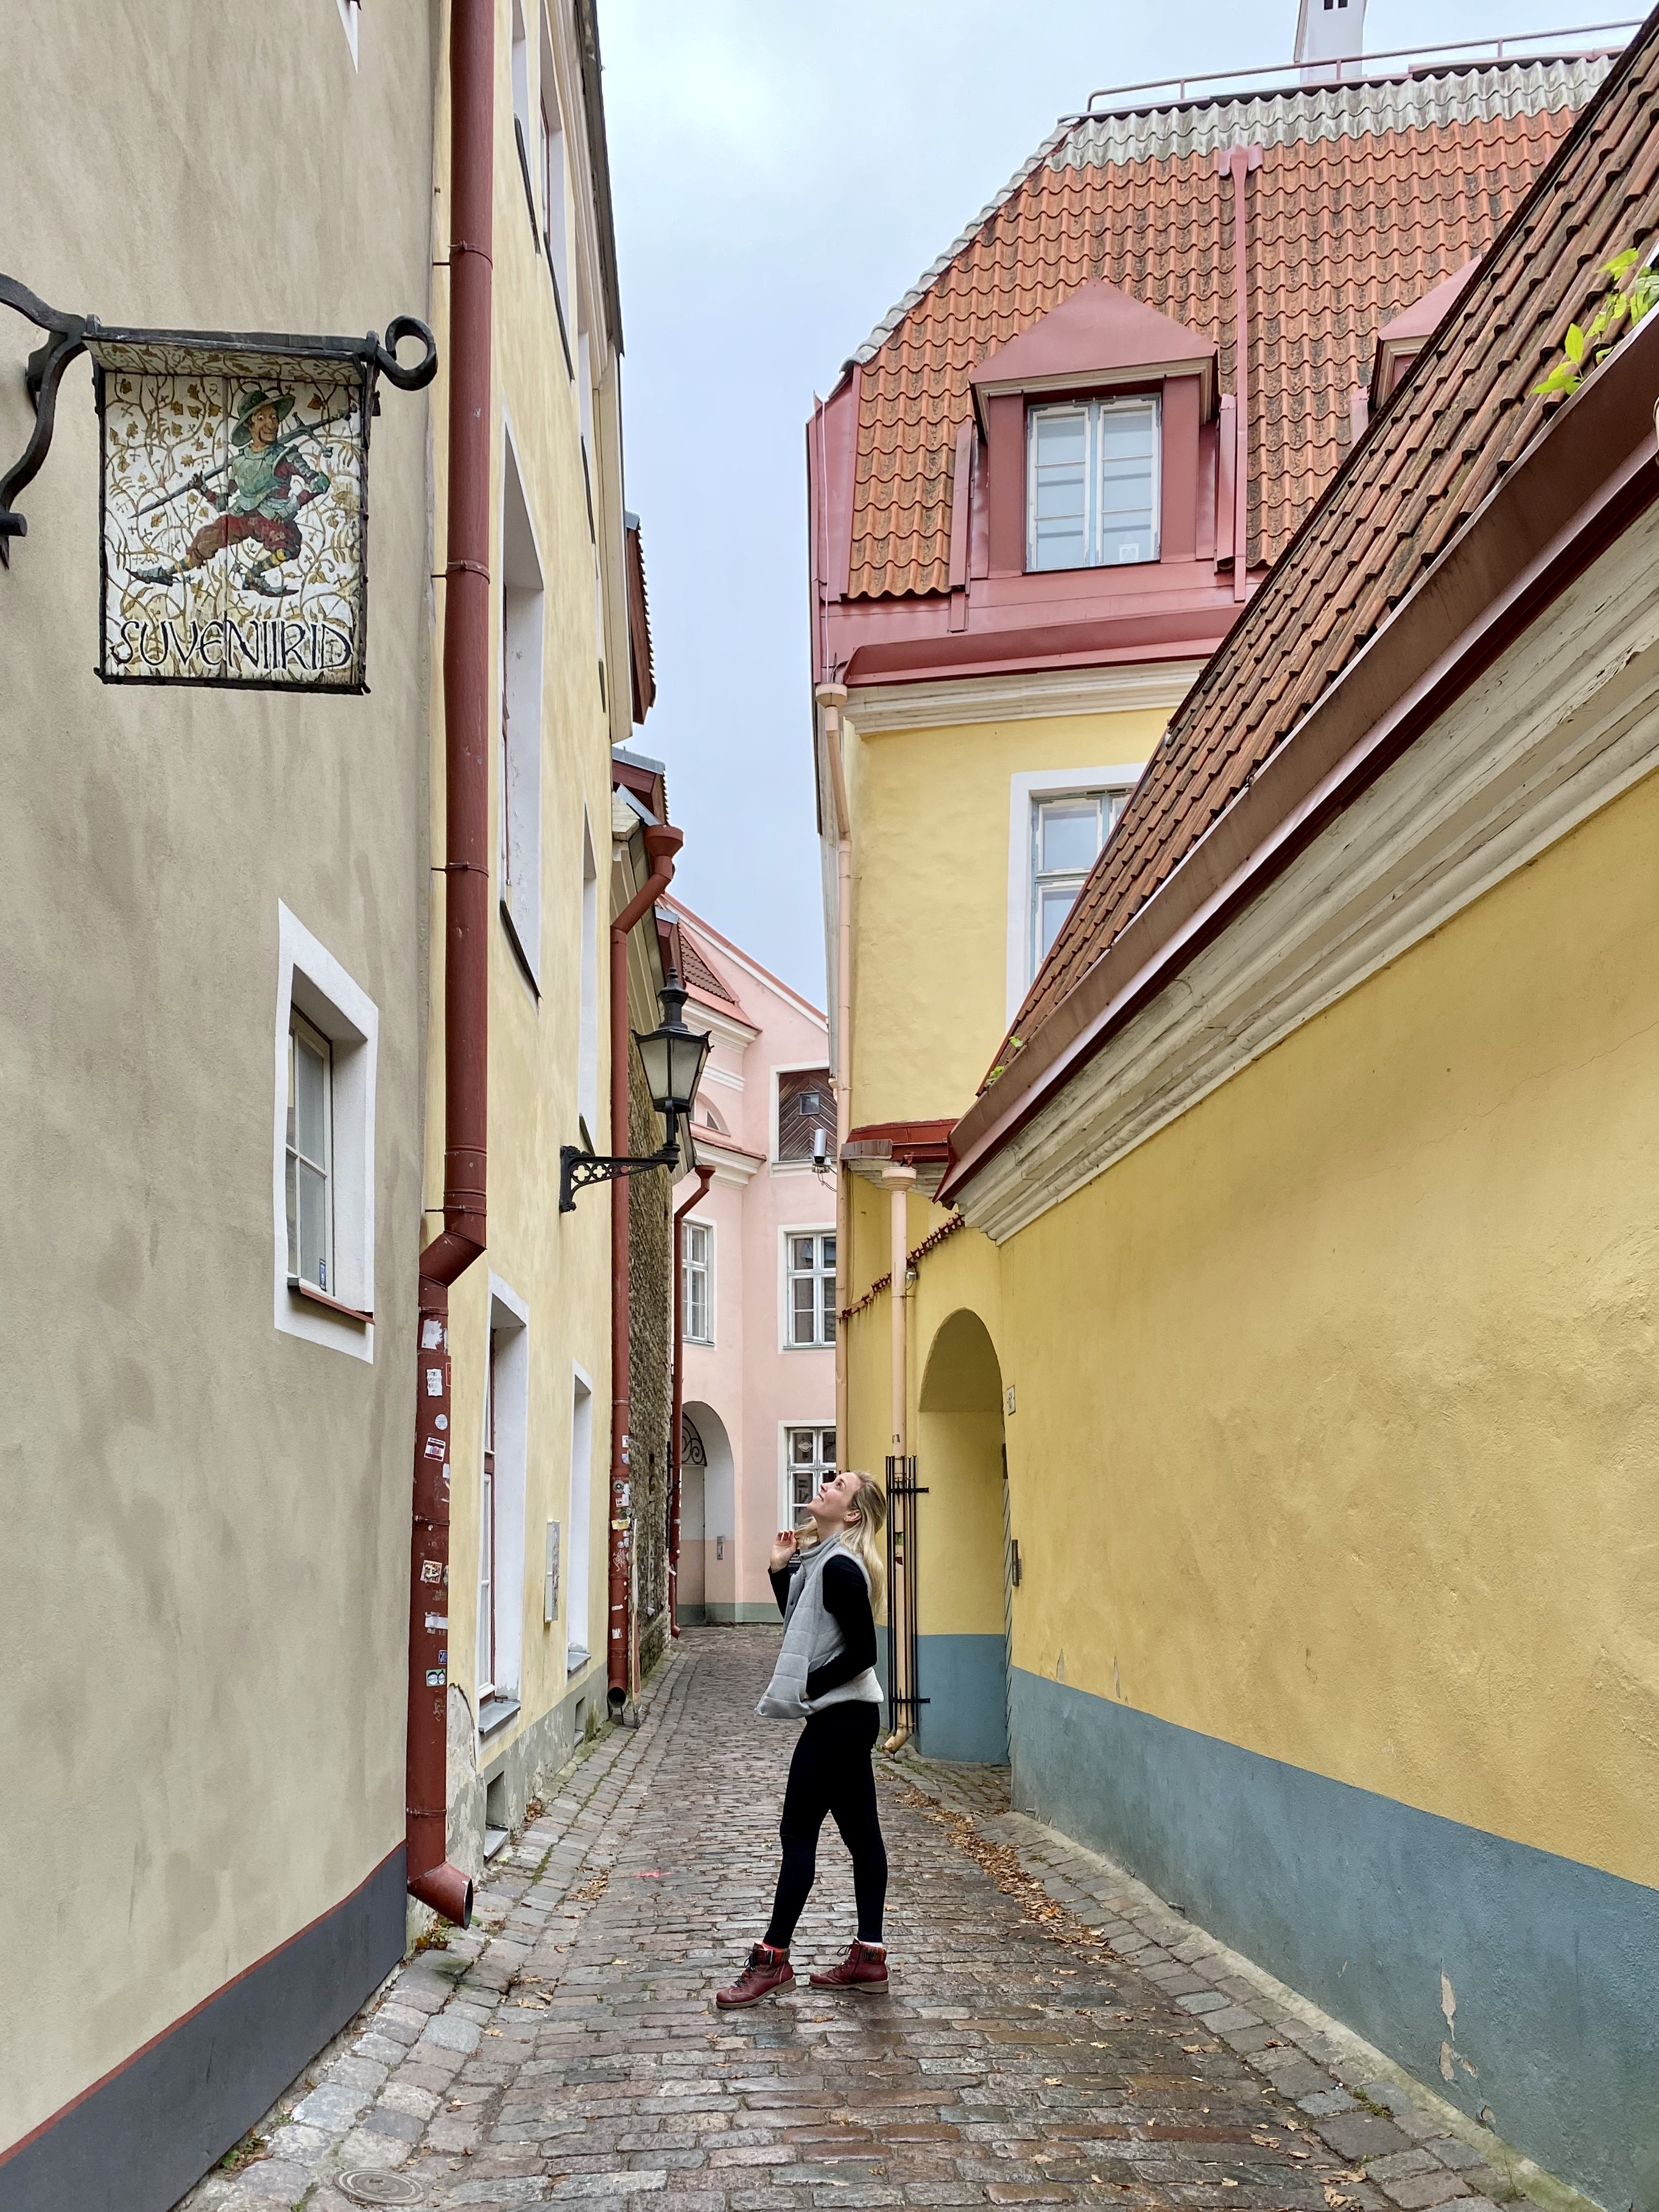 Erinn standing in an alley with colorful walls in Tallinn, Estonia.